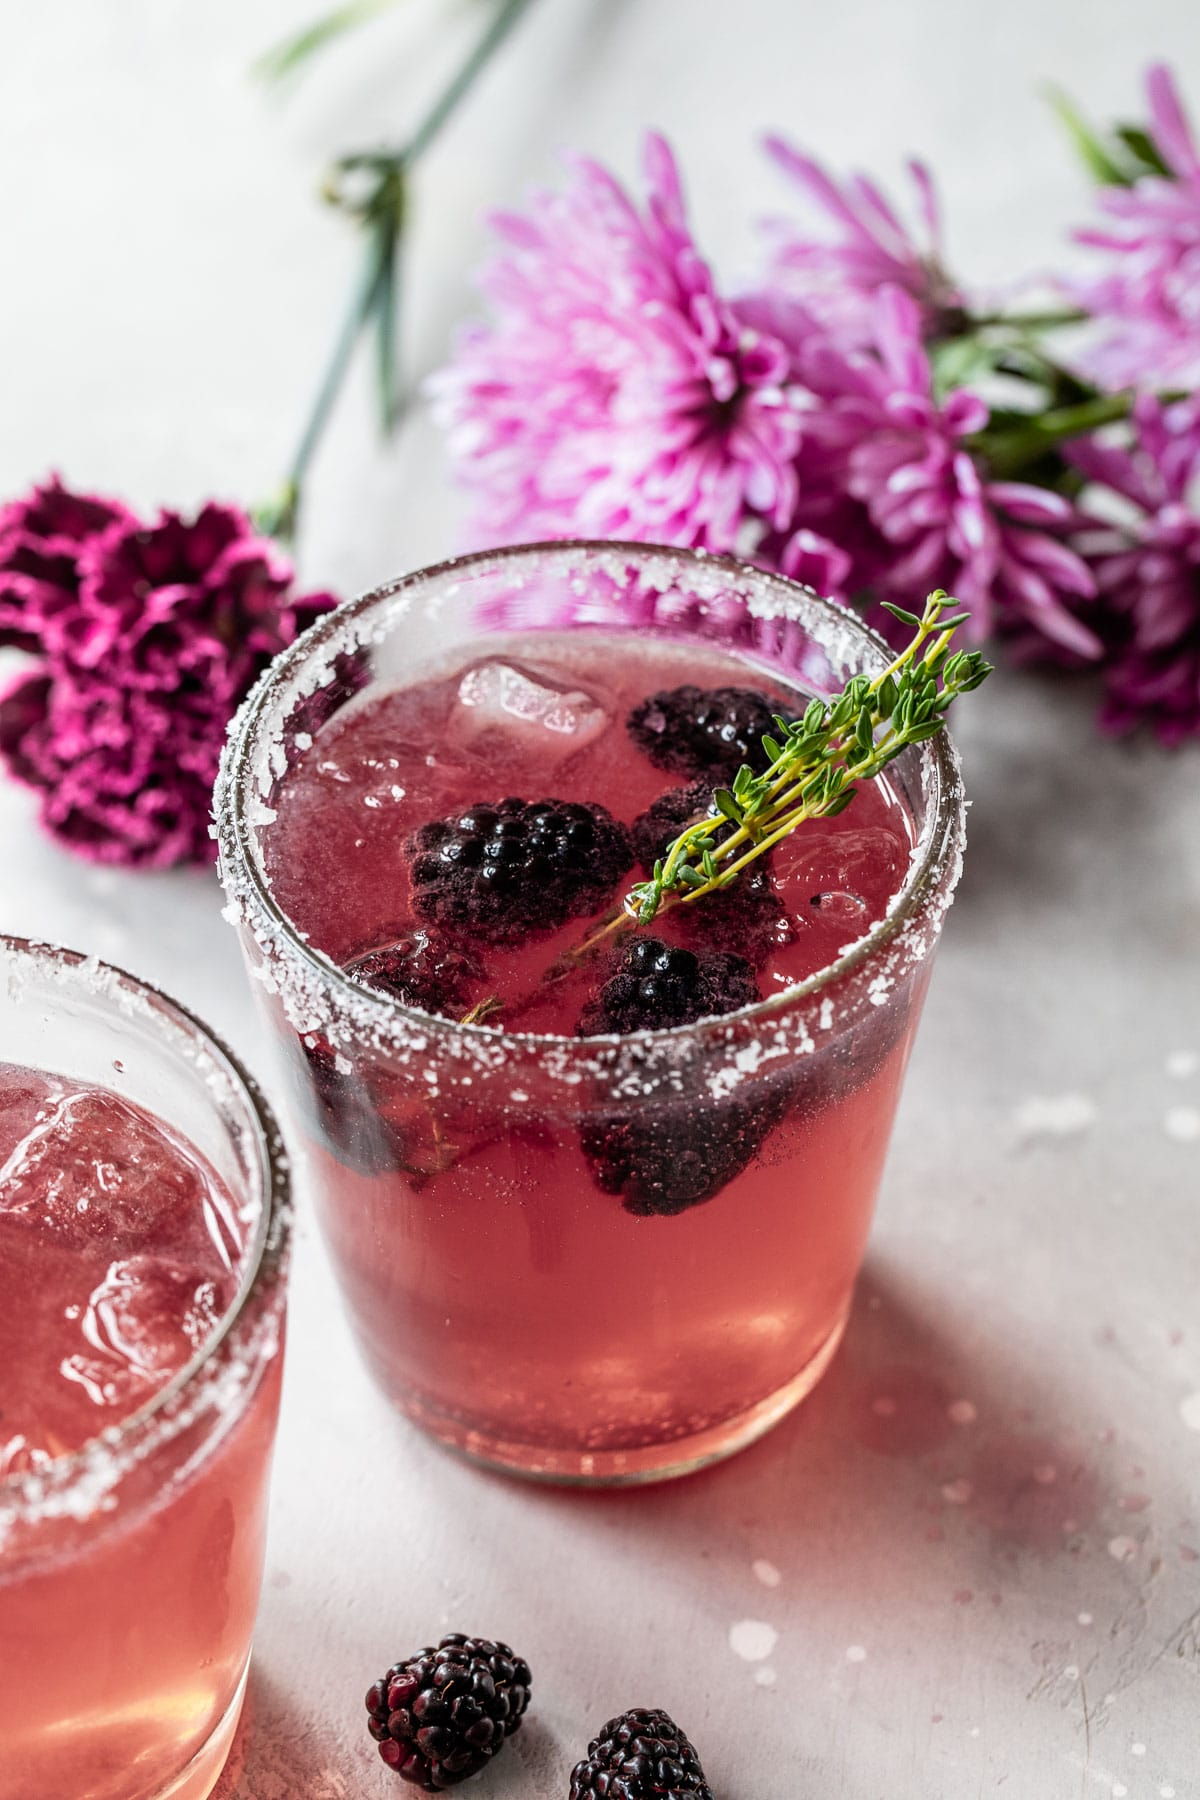 purple cocktail with blackberries and purple flowers in the background